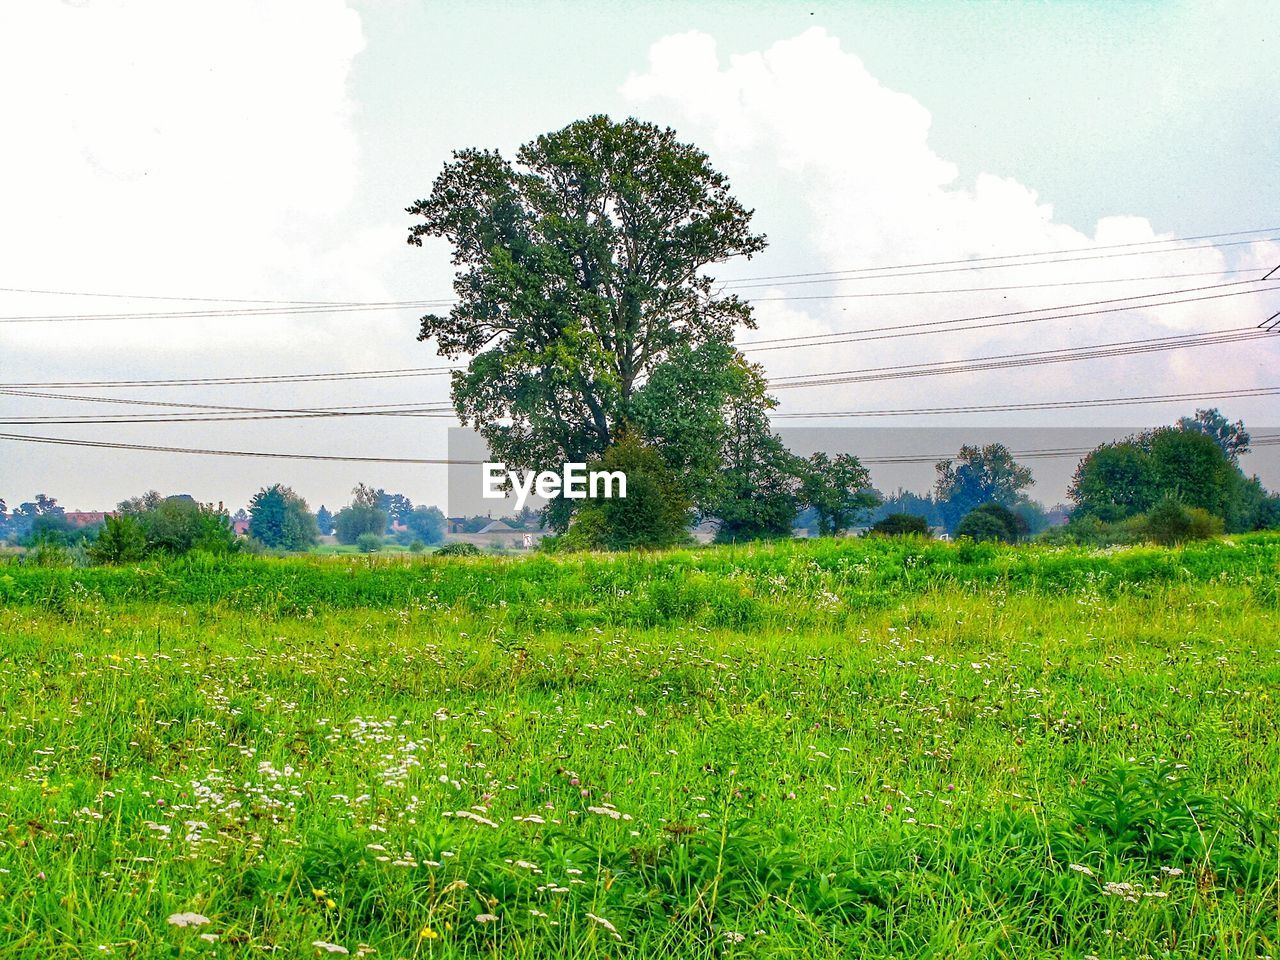 sky, plant, field, land, tree, growth, green color, nature, grass, beauty in nature, environment, cable, landscape, electricity, scenics - nature, cloud - sky, tranquility, no people, tranquil scene, power line, outdoors, power supply